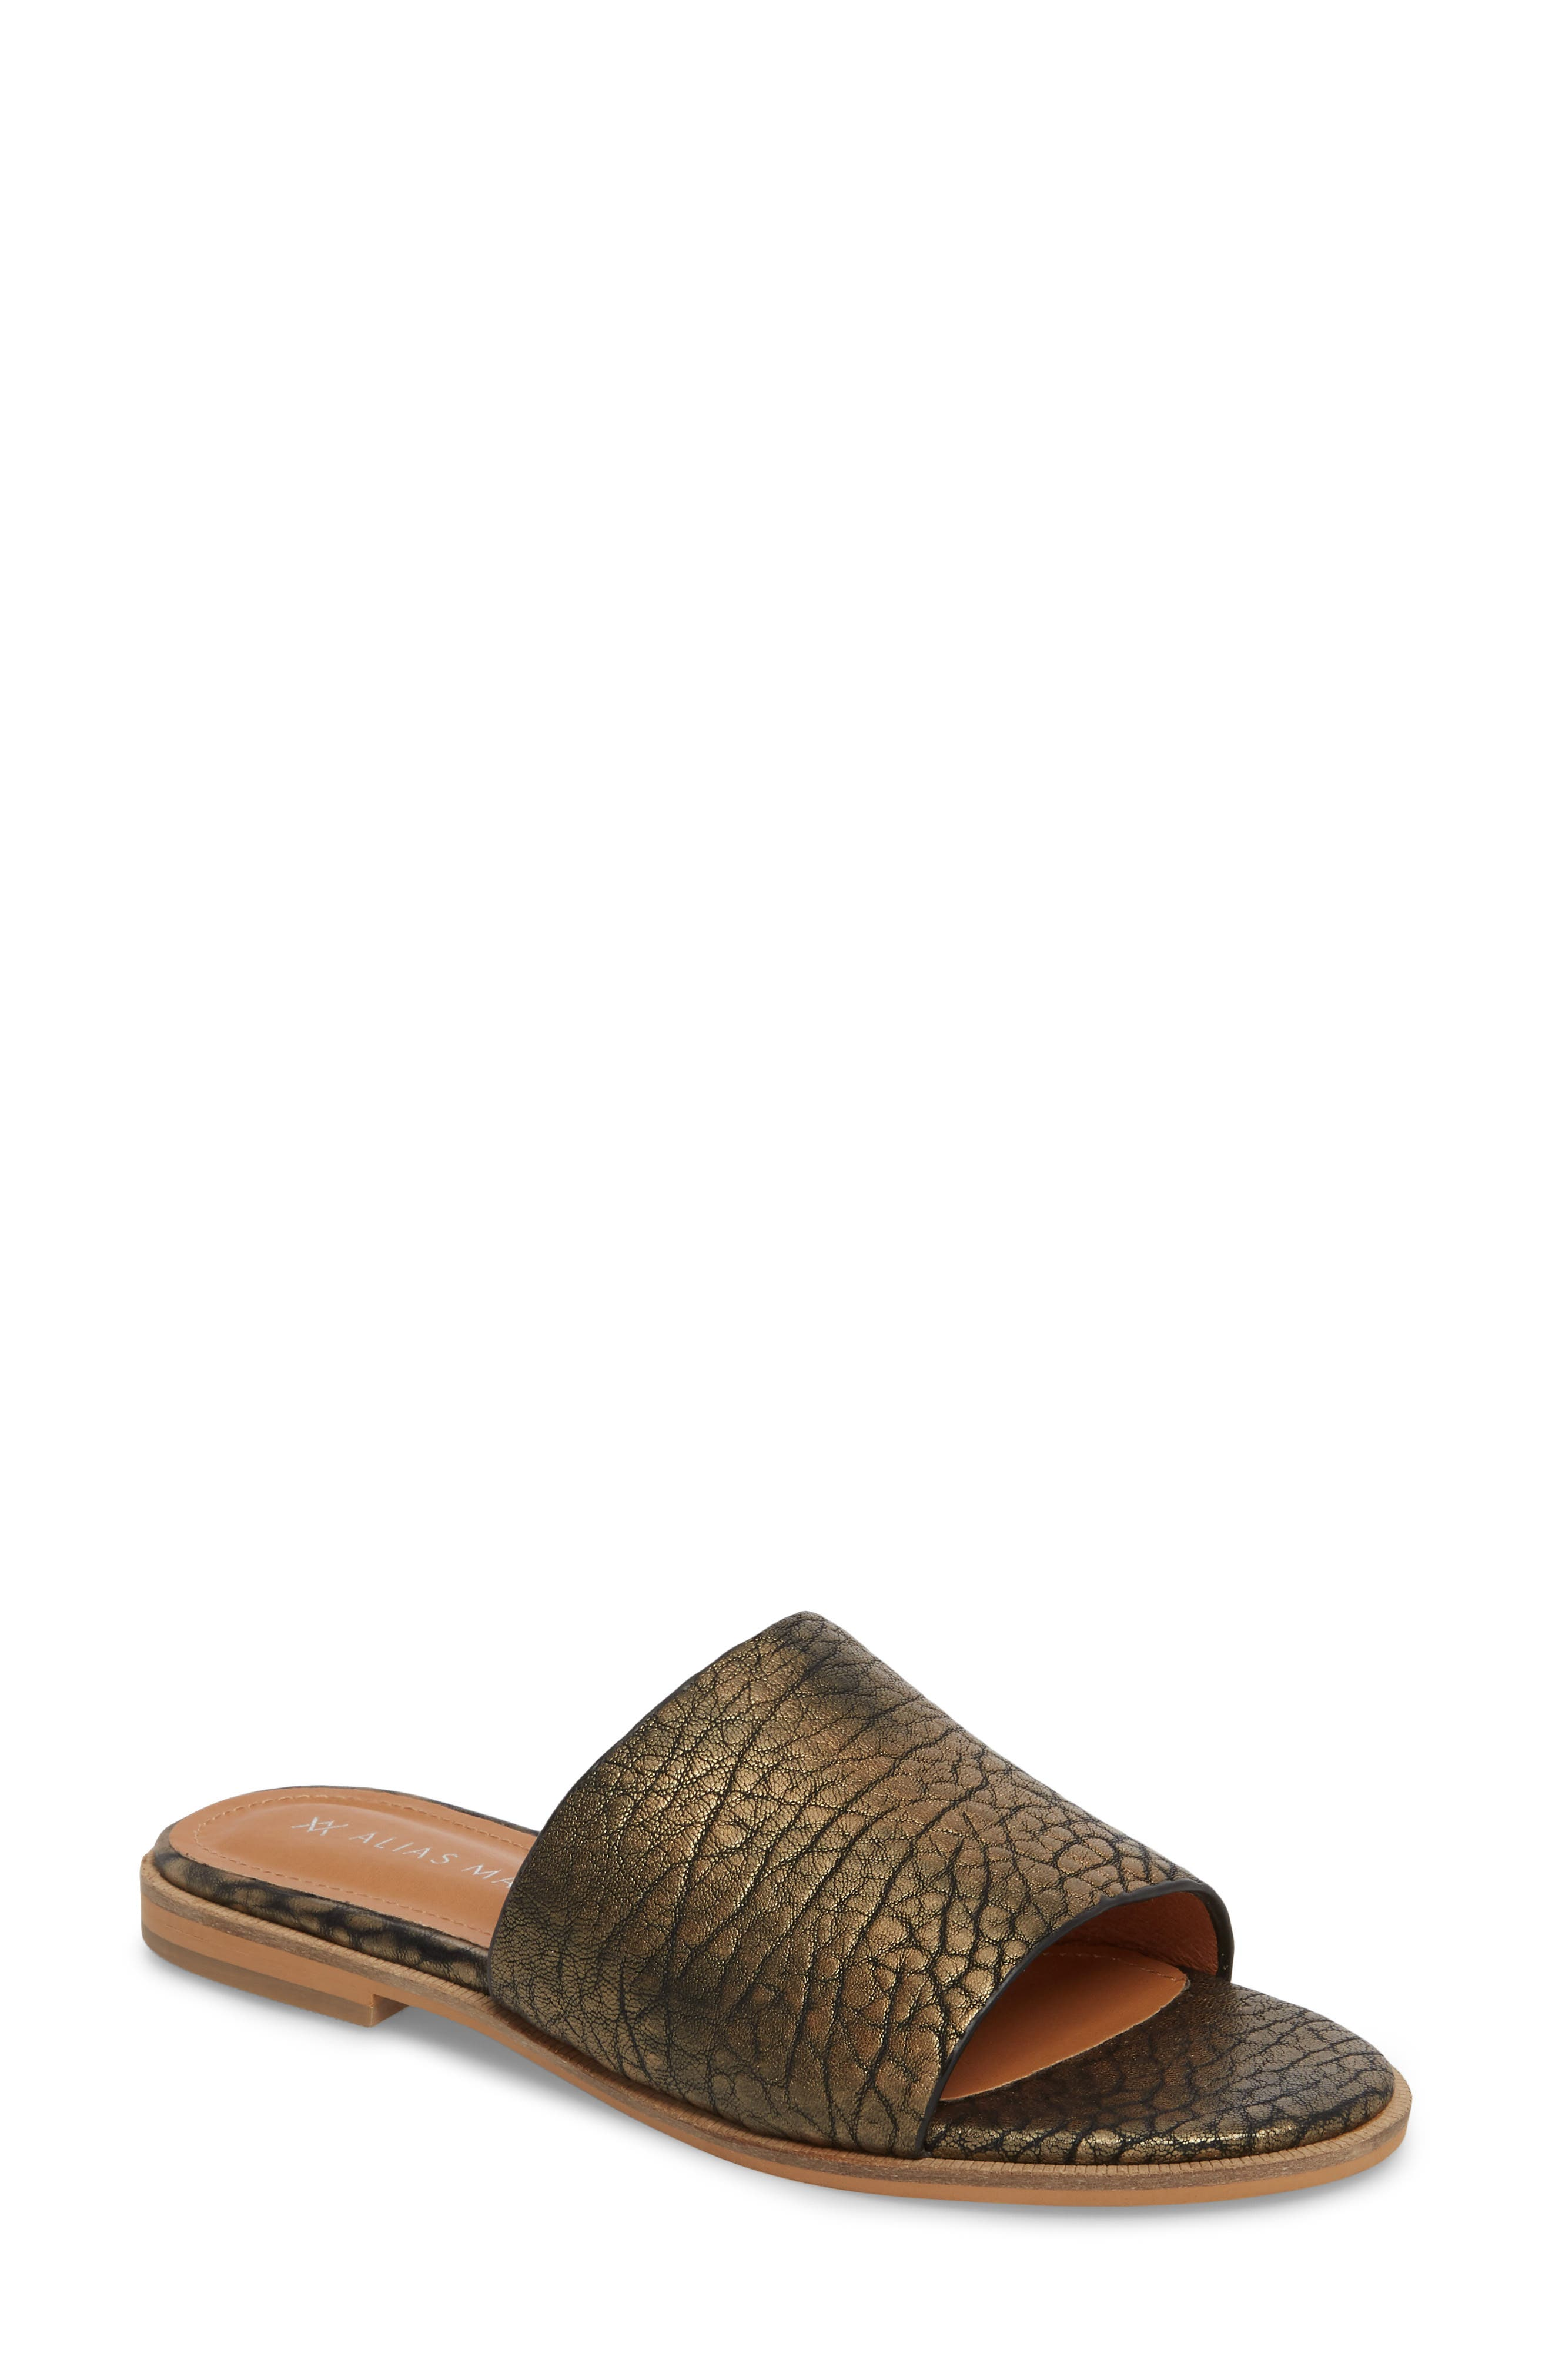 THERAPY SLIDE SANDAL